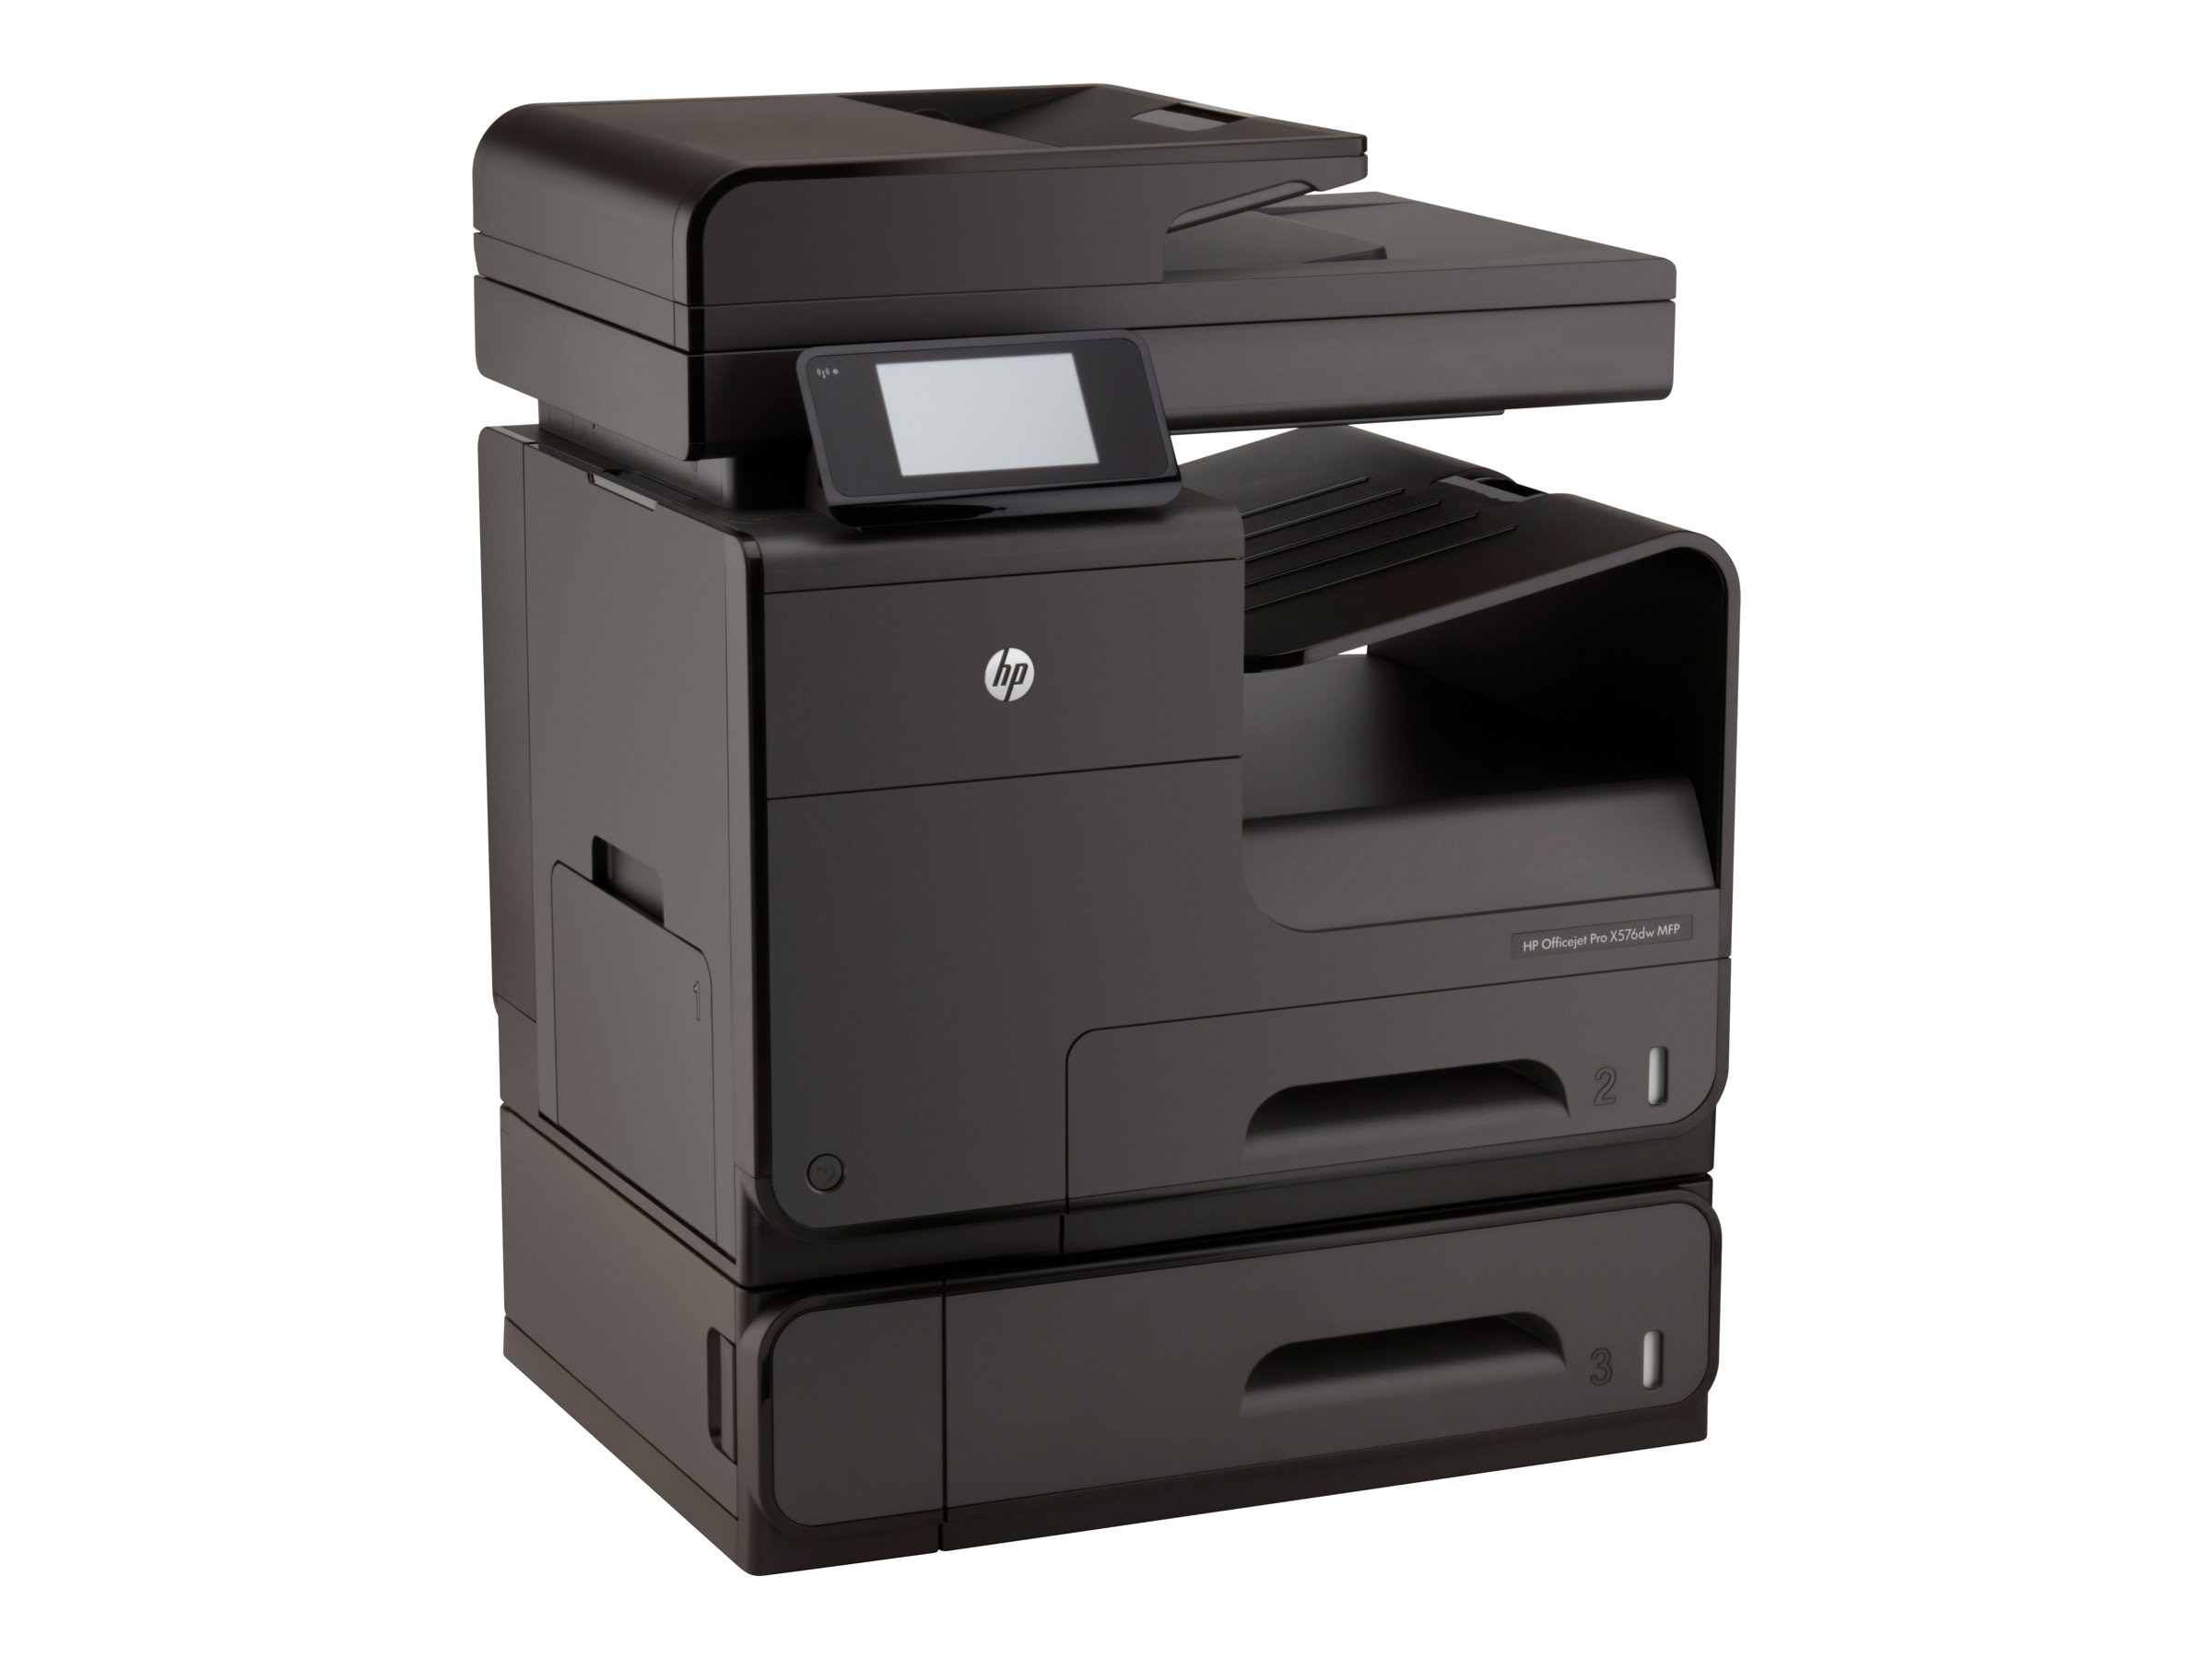 HP Officejet Pro X Series X576dw Color MFP $799 - $240 instant rebate = $559 Expires 2 29 16, CN598A#B1H